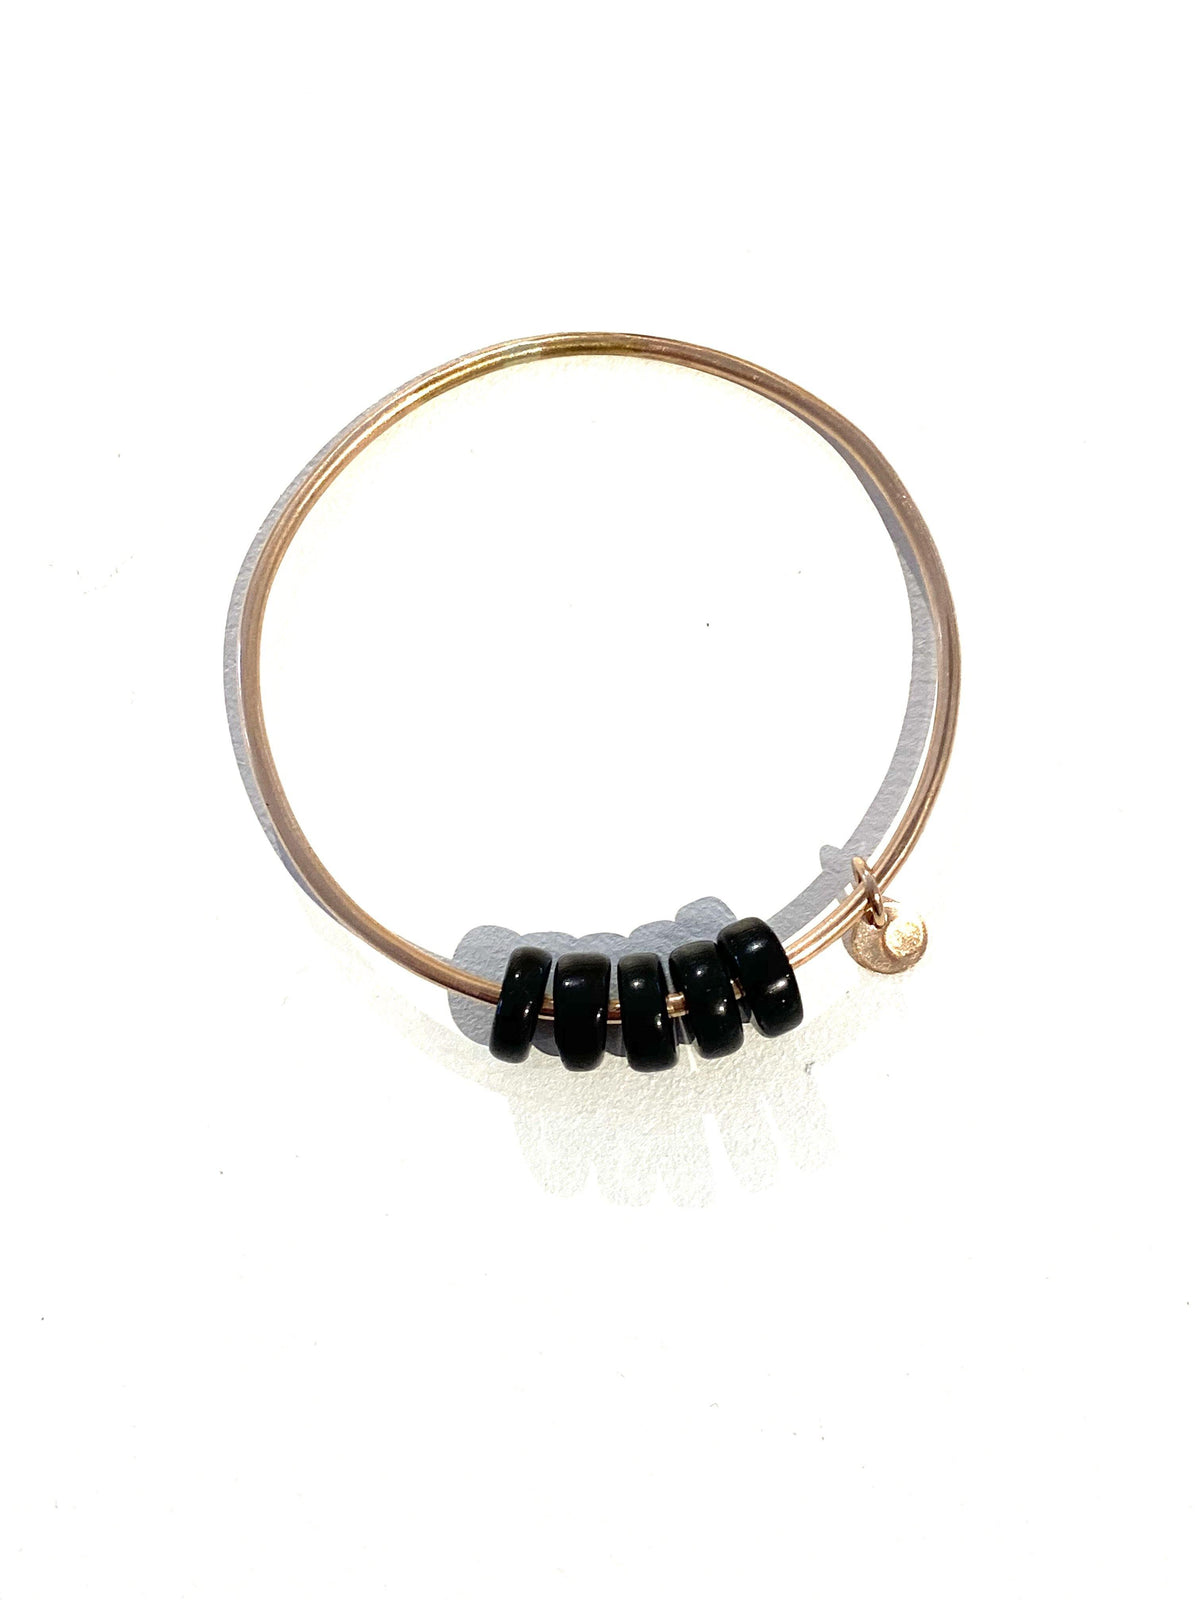 Gold Bangle Black Obsidian Beads